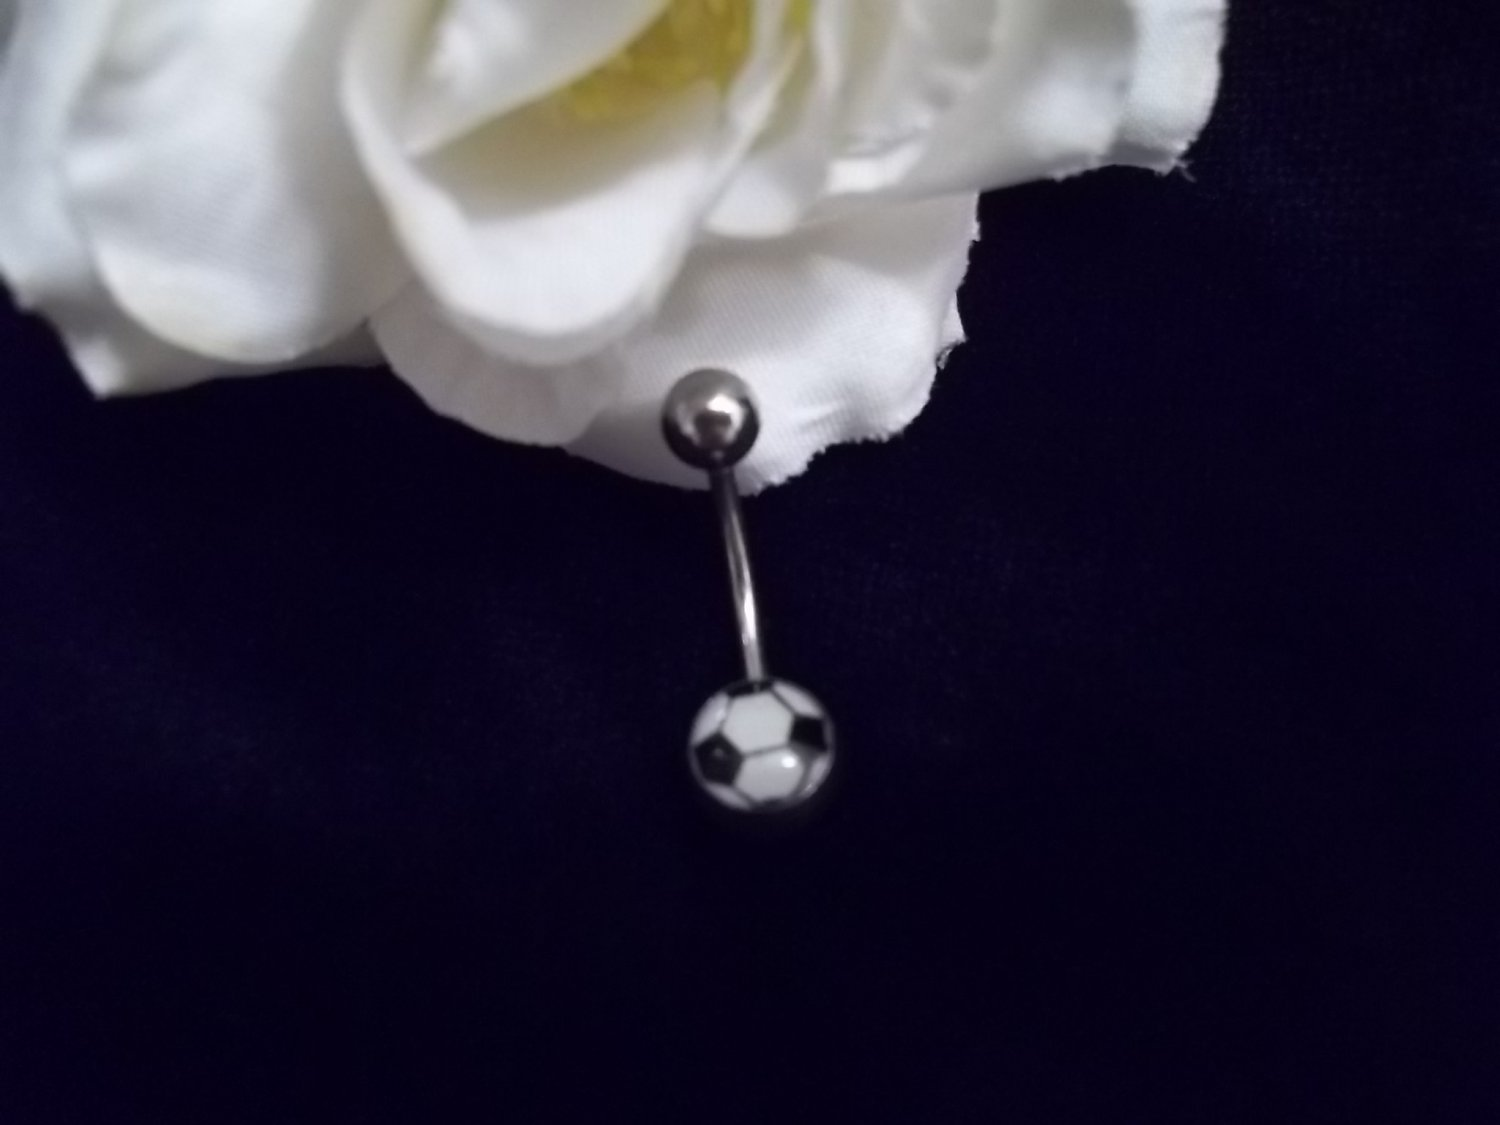 *SOCCER BALL GLOW IN THE DARK BELLY RING 14G